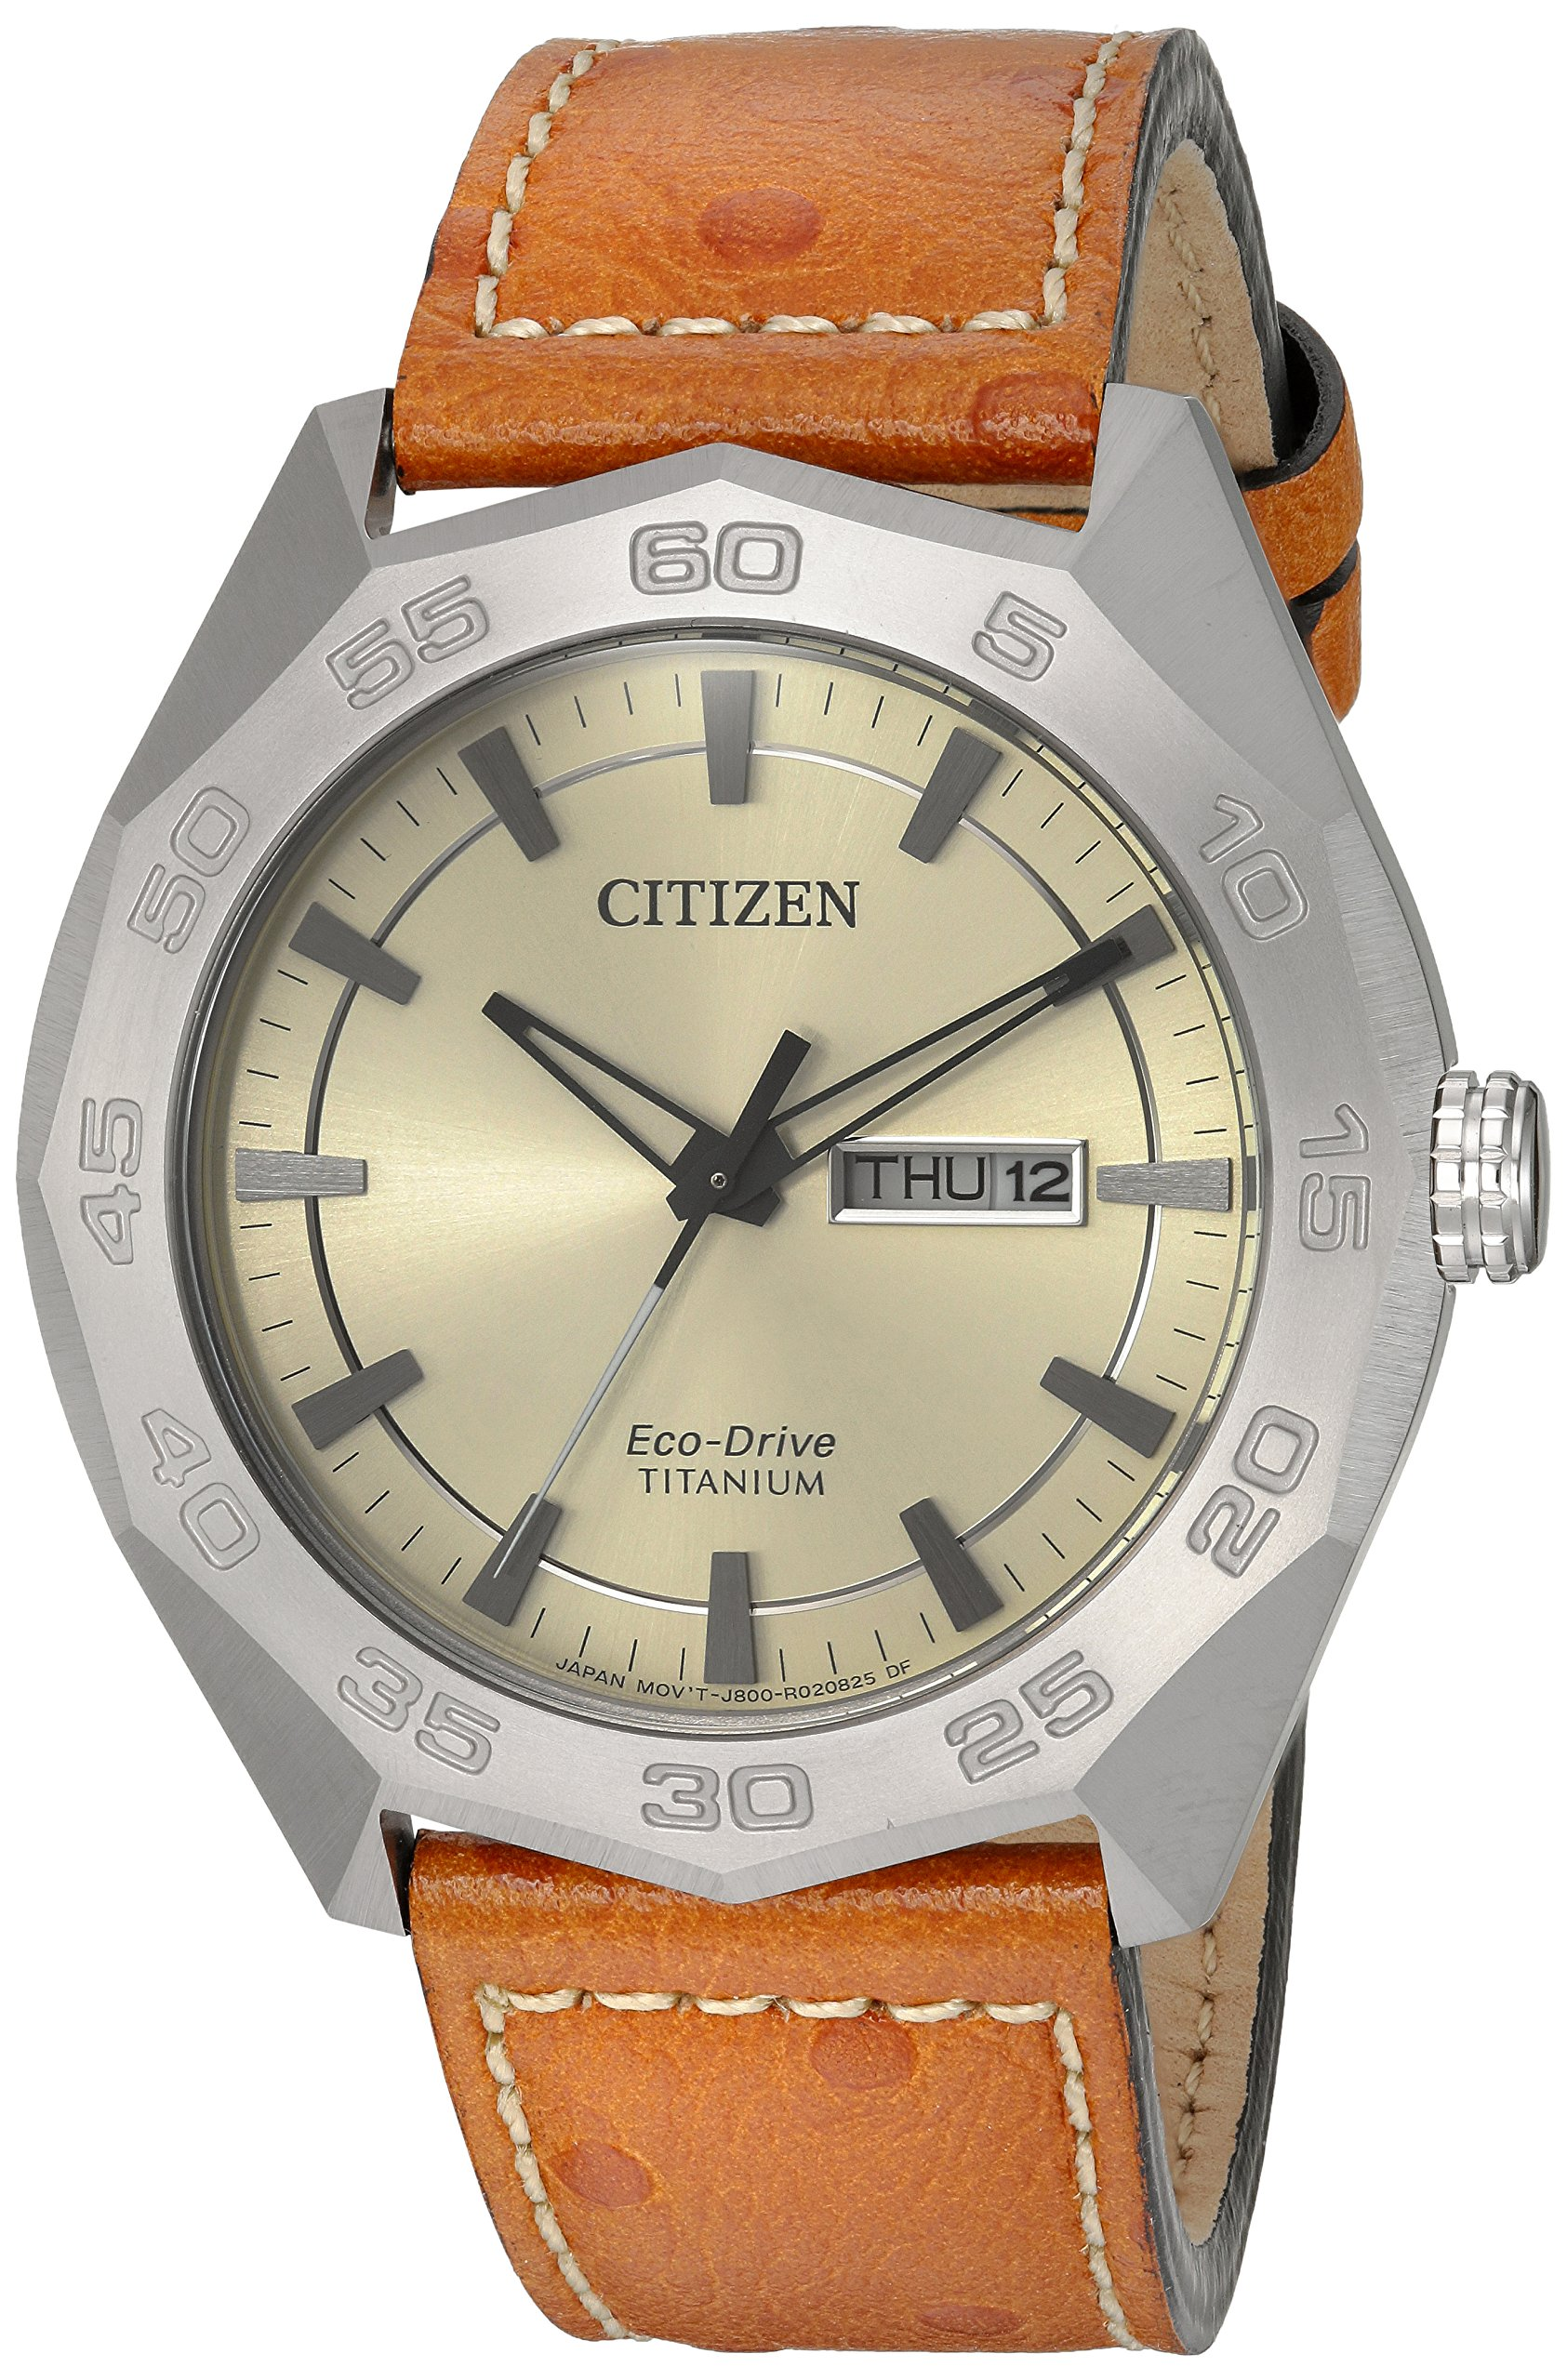 Citizen Men's 'Super' Quartz Titanium and Leather Casual Watch, Color:Brown (Model: AW0060-11P)